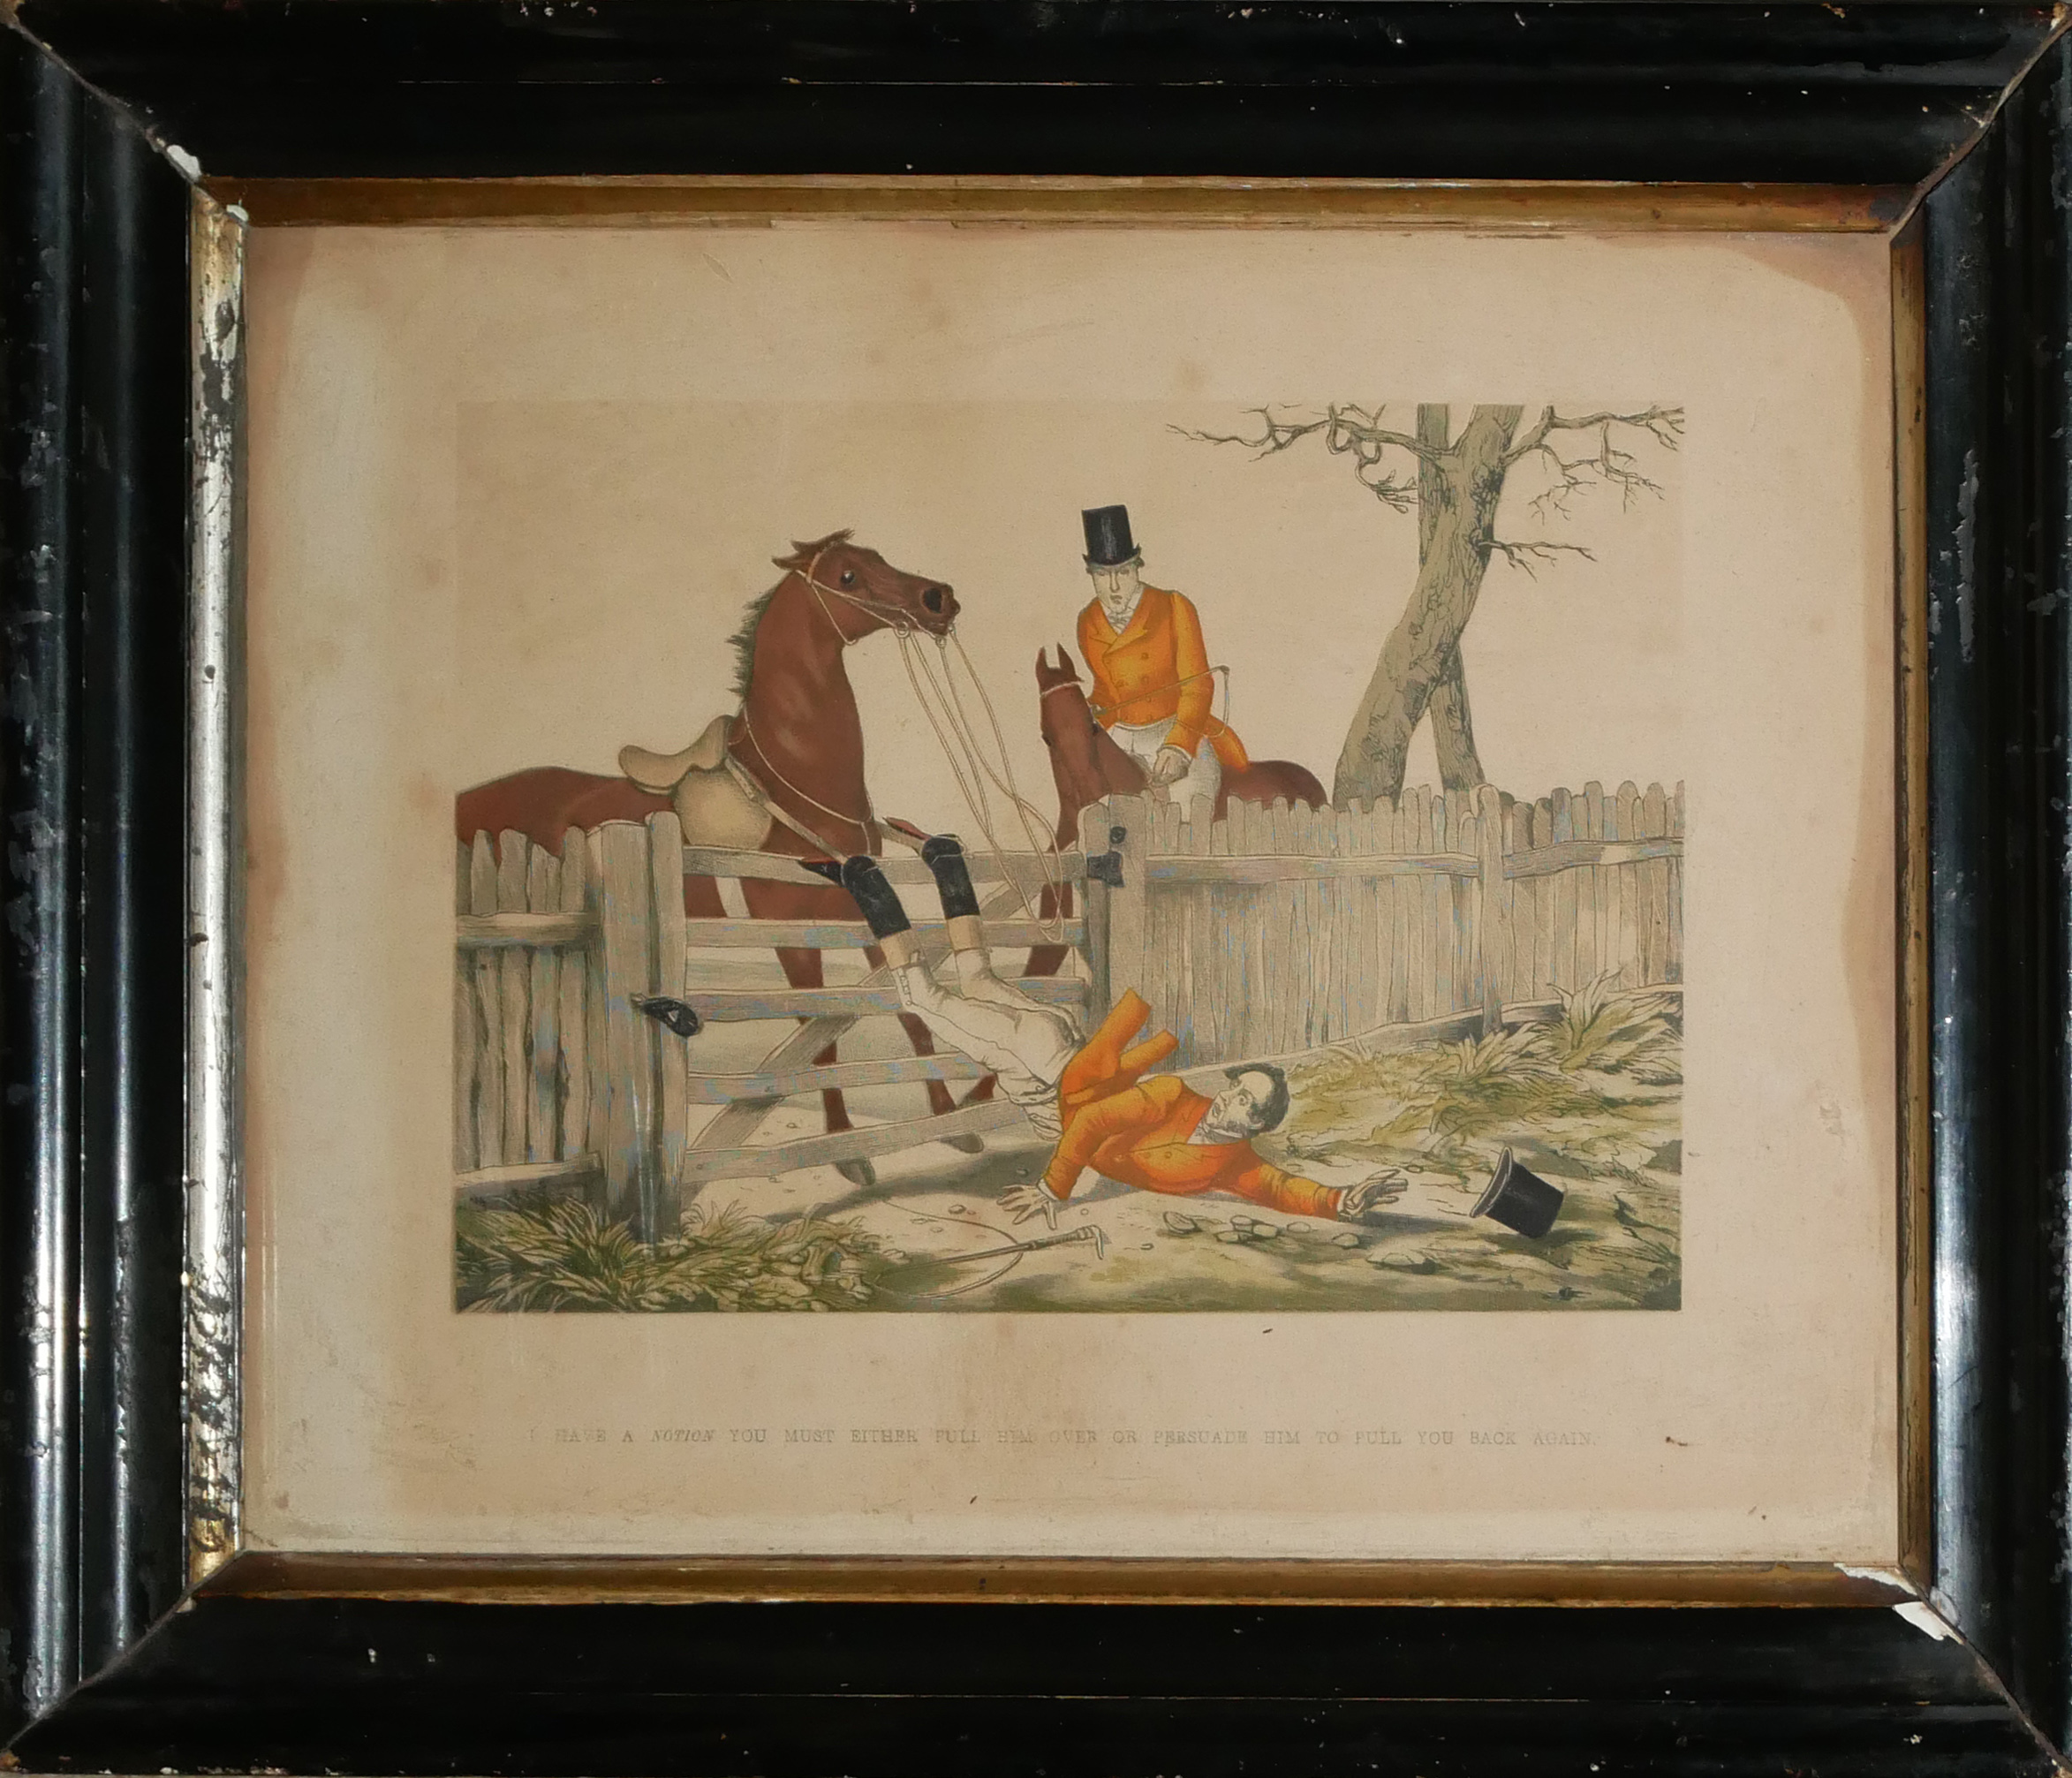 A COLLECTION OF SPORTING COLOURED ENGRAVINGS To include a scene Ben Marshall - notions series, - Image 6 of 7